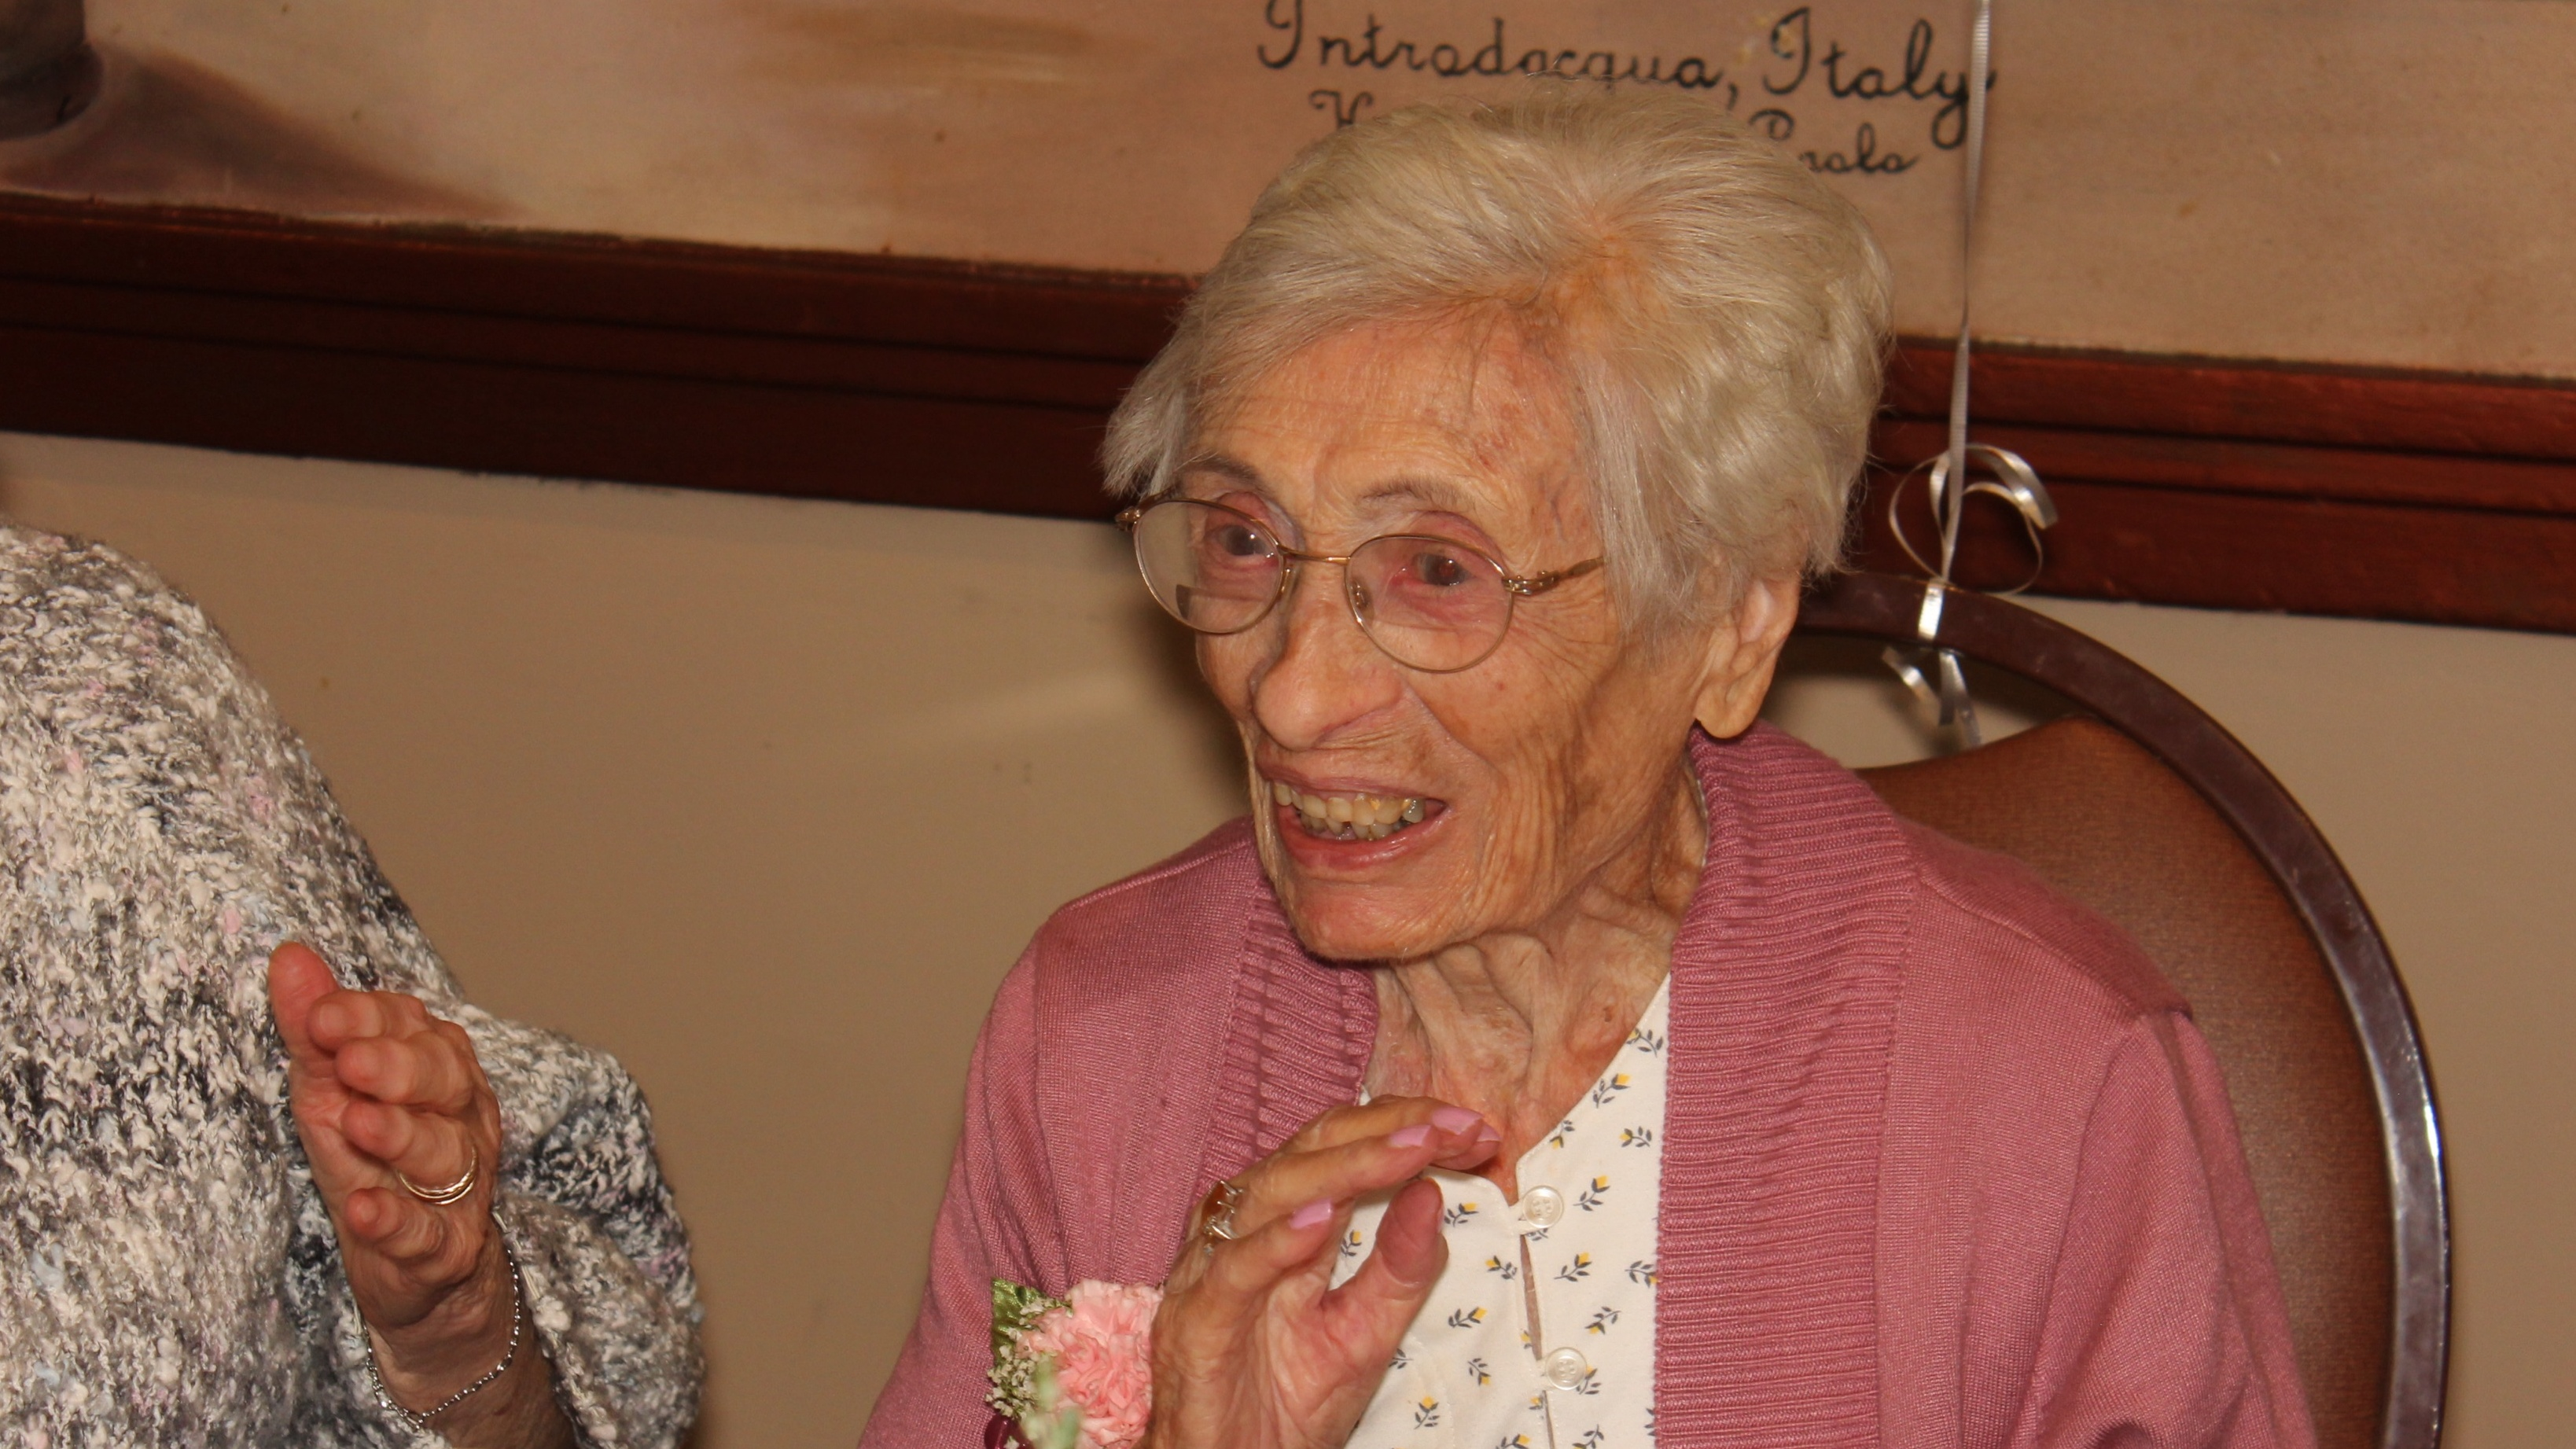 A Wish Granted to 109 year old Catherine! Image